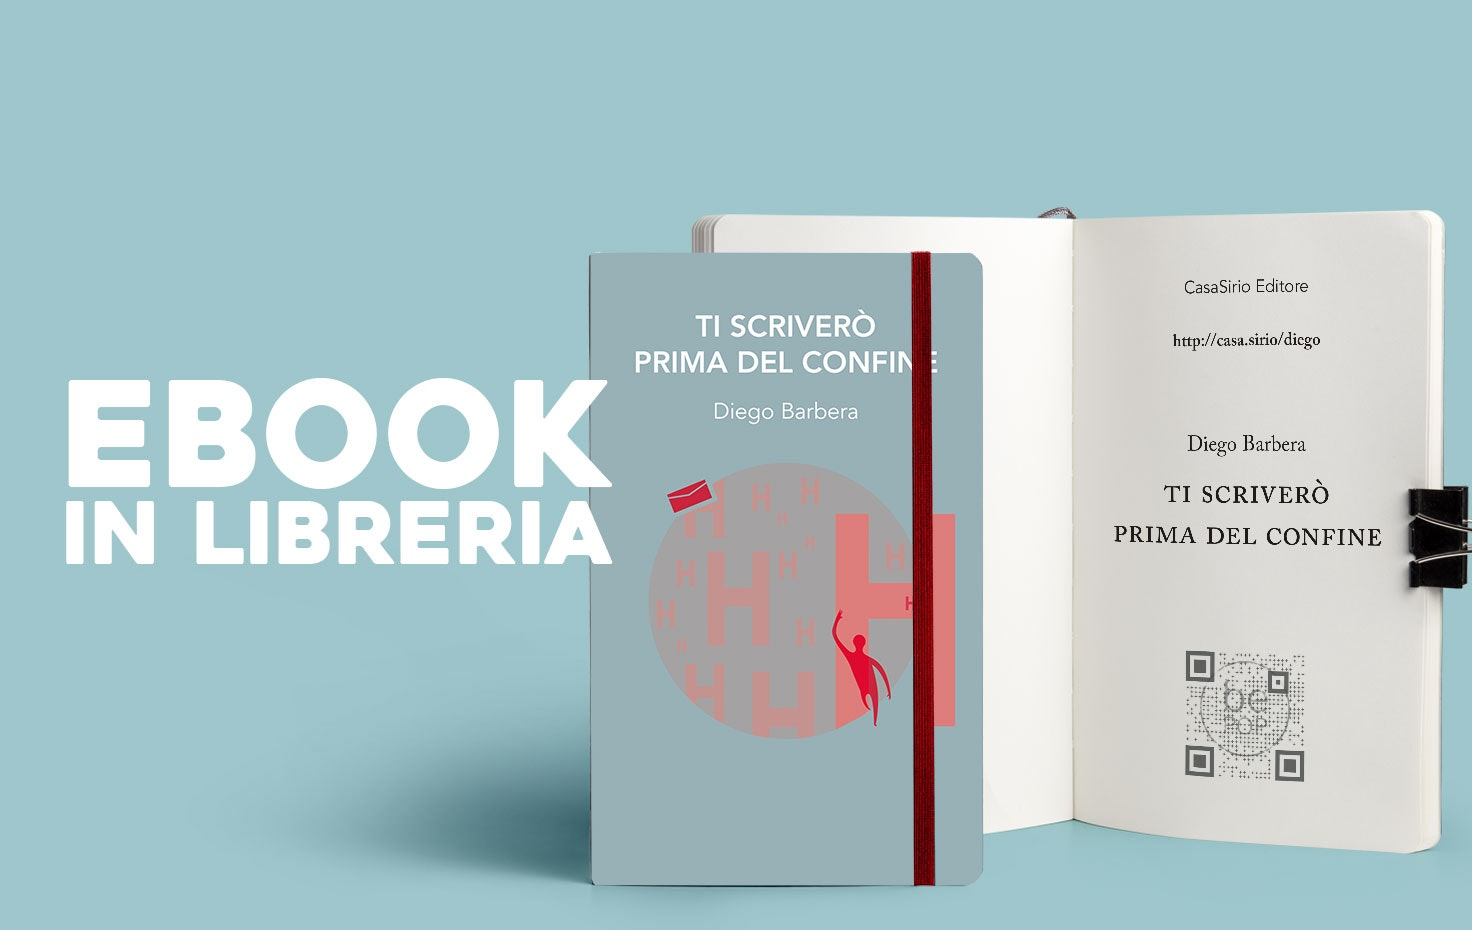 eBook in libreria